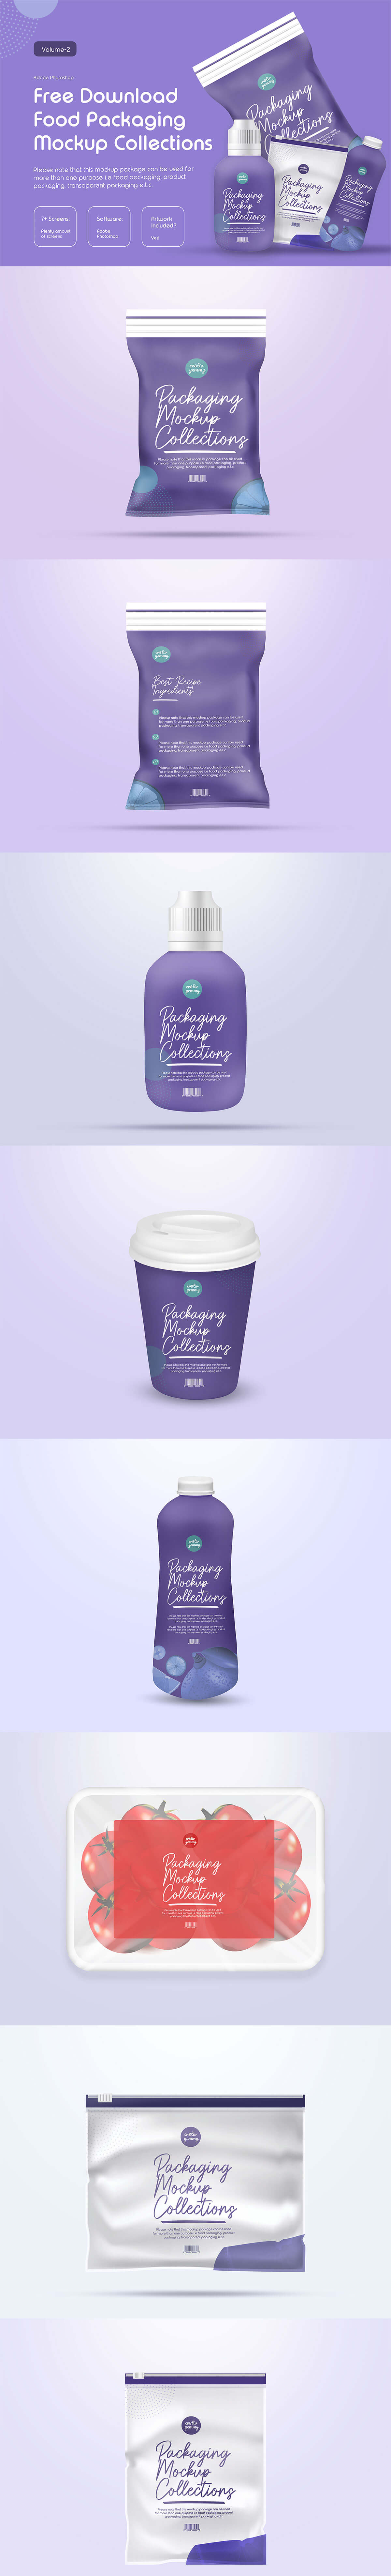 Free Food Packaging Mockup Collection V2